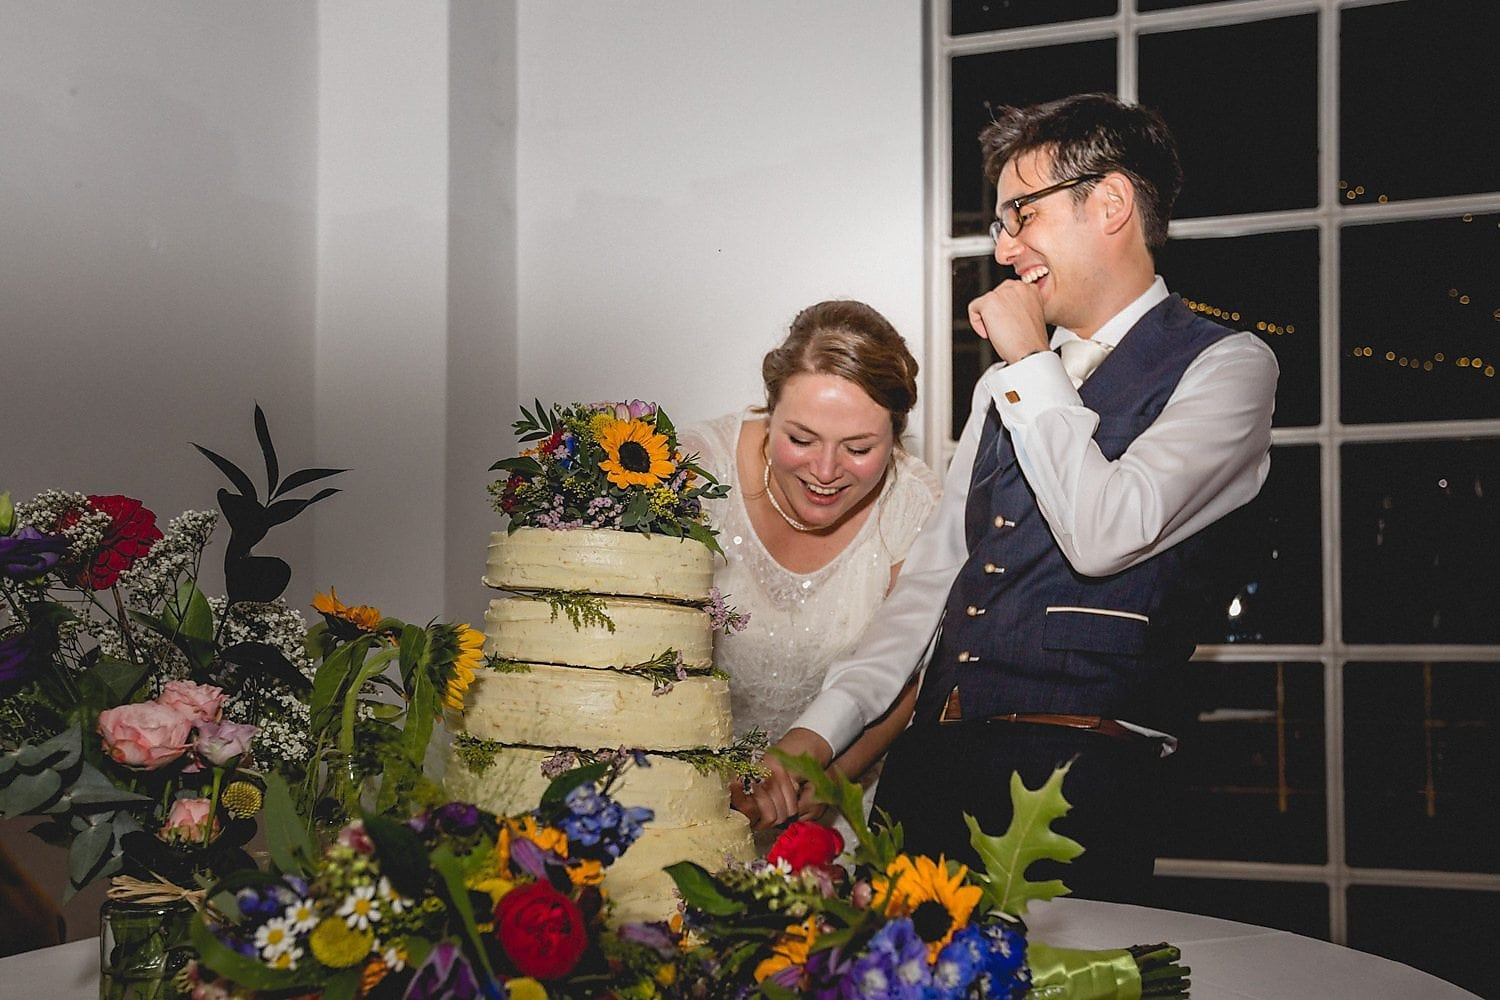 The bride and groom laugh as they cut their wedding cake